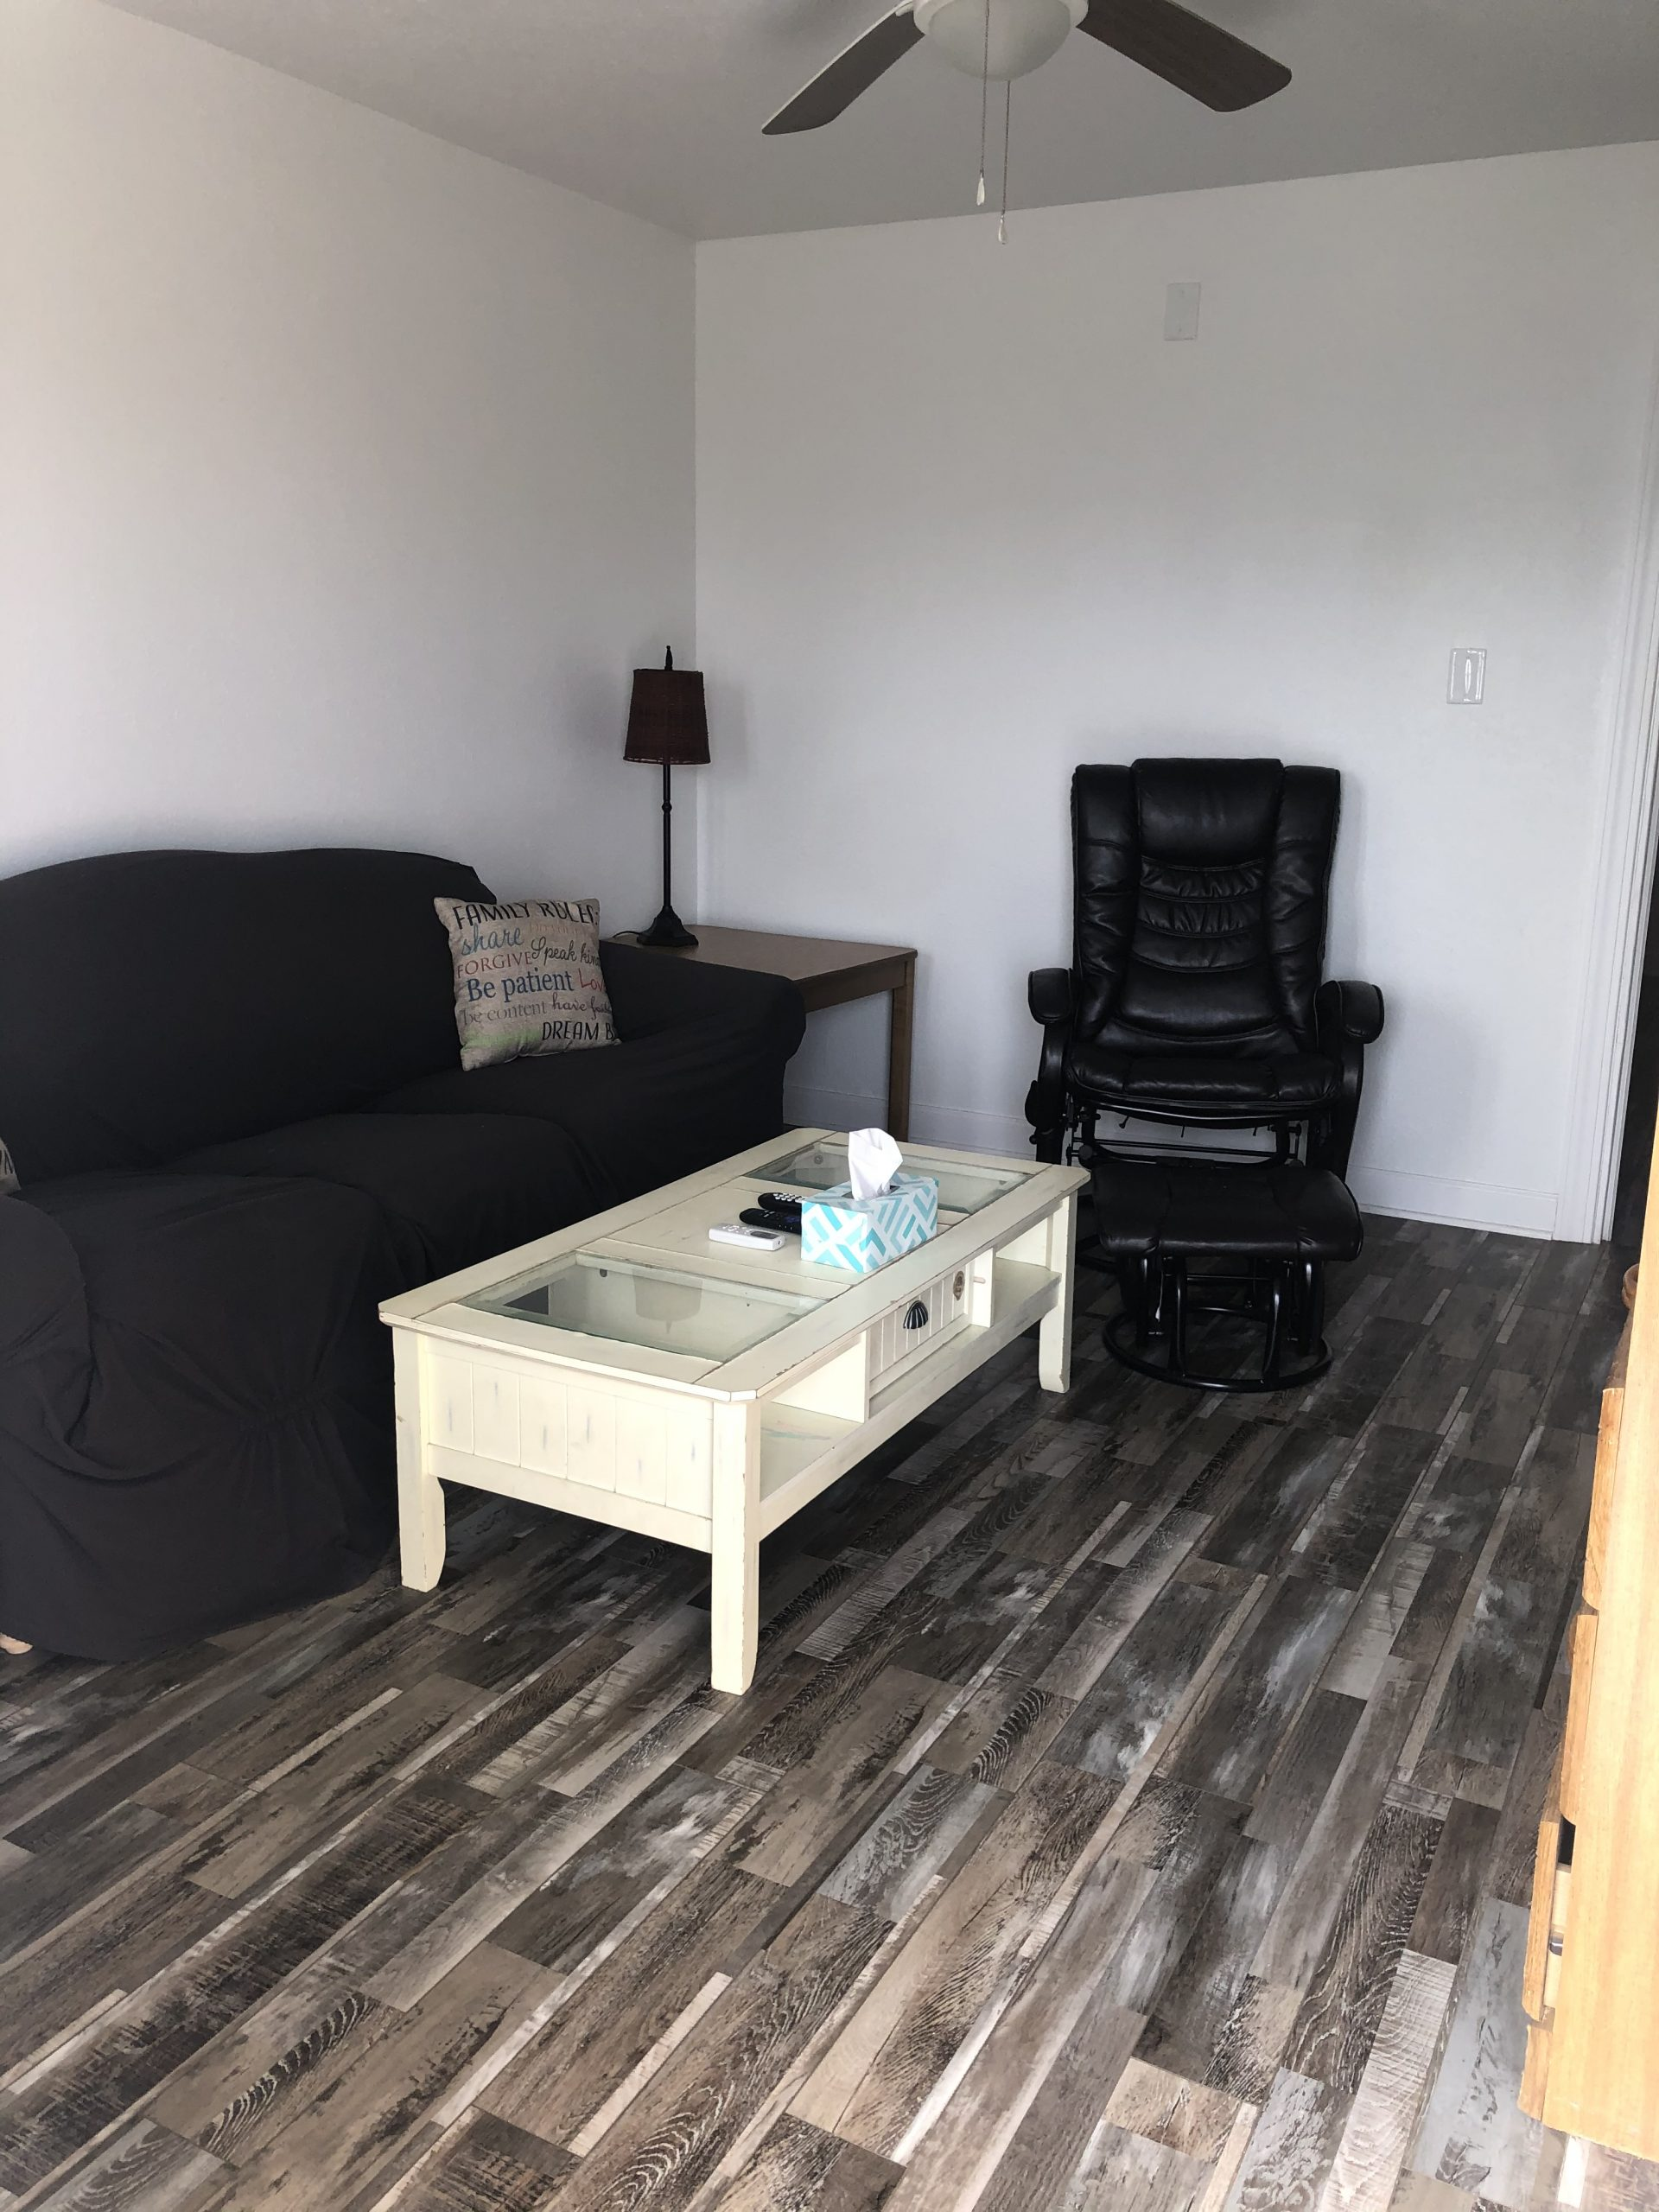 therapy chair and quiet space in a resident unit at changing tides